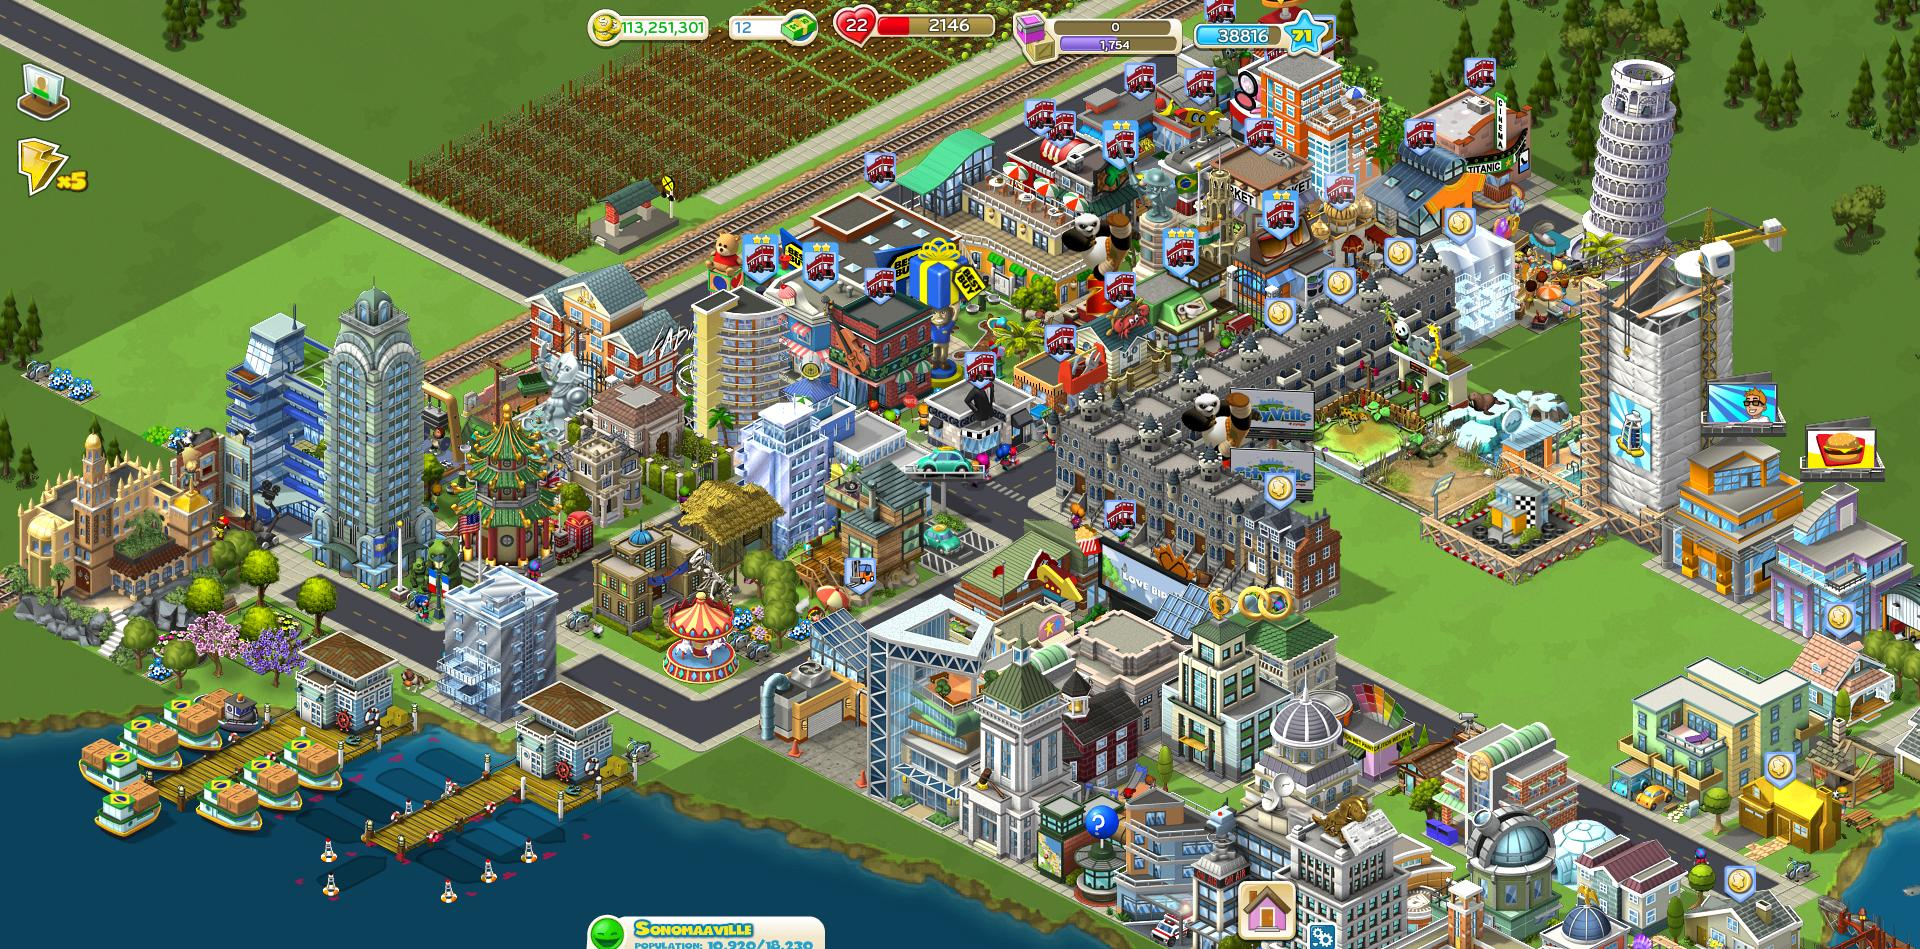 ragns games play energy cityville facebook friends mighty share battery thursday wasting glory mock pool working power engine free made time